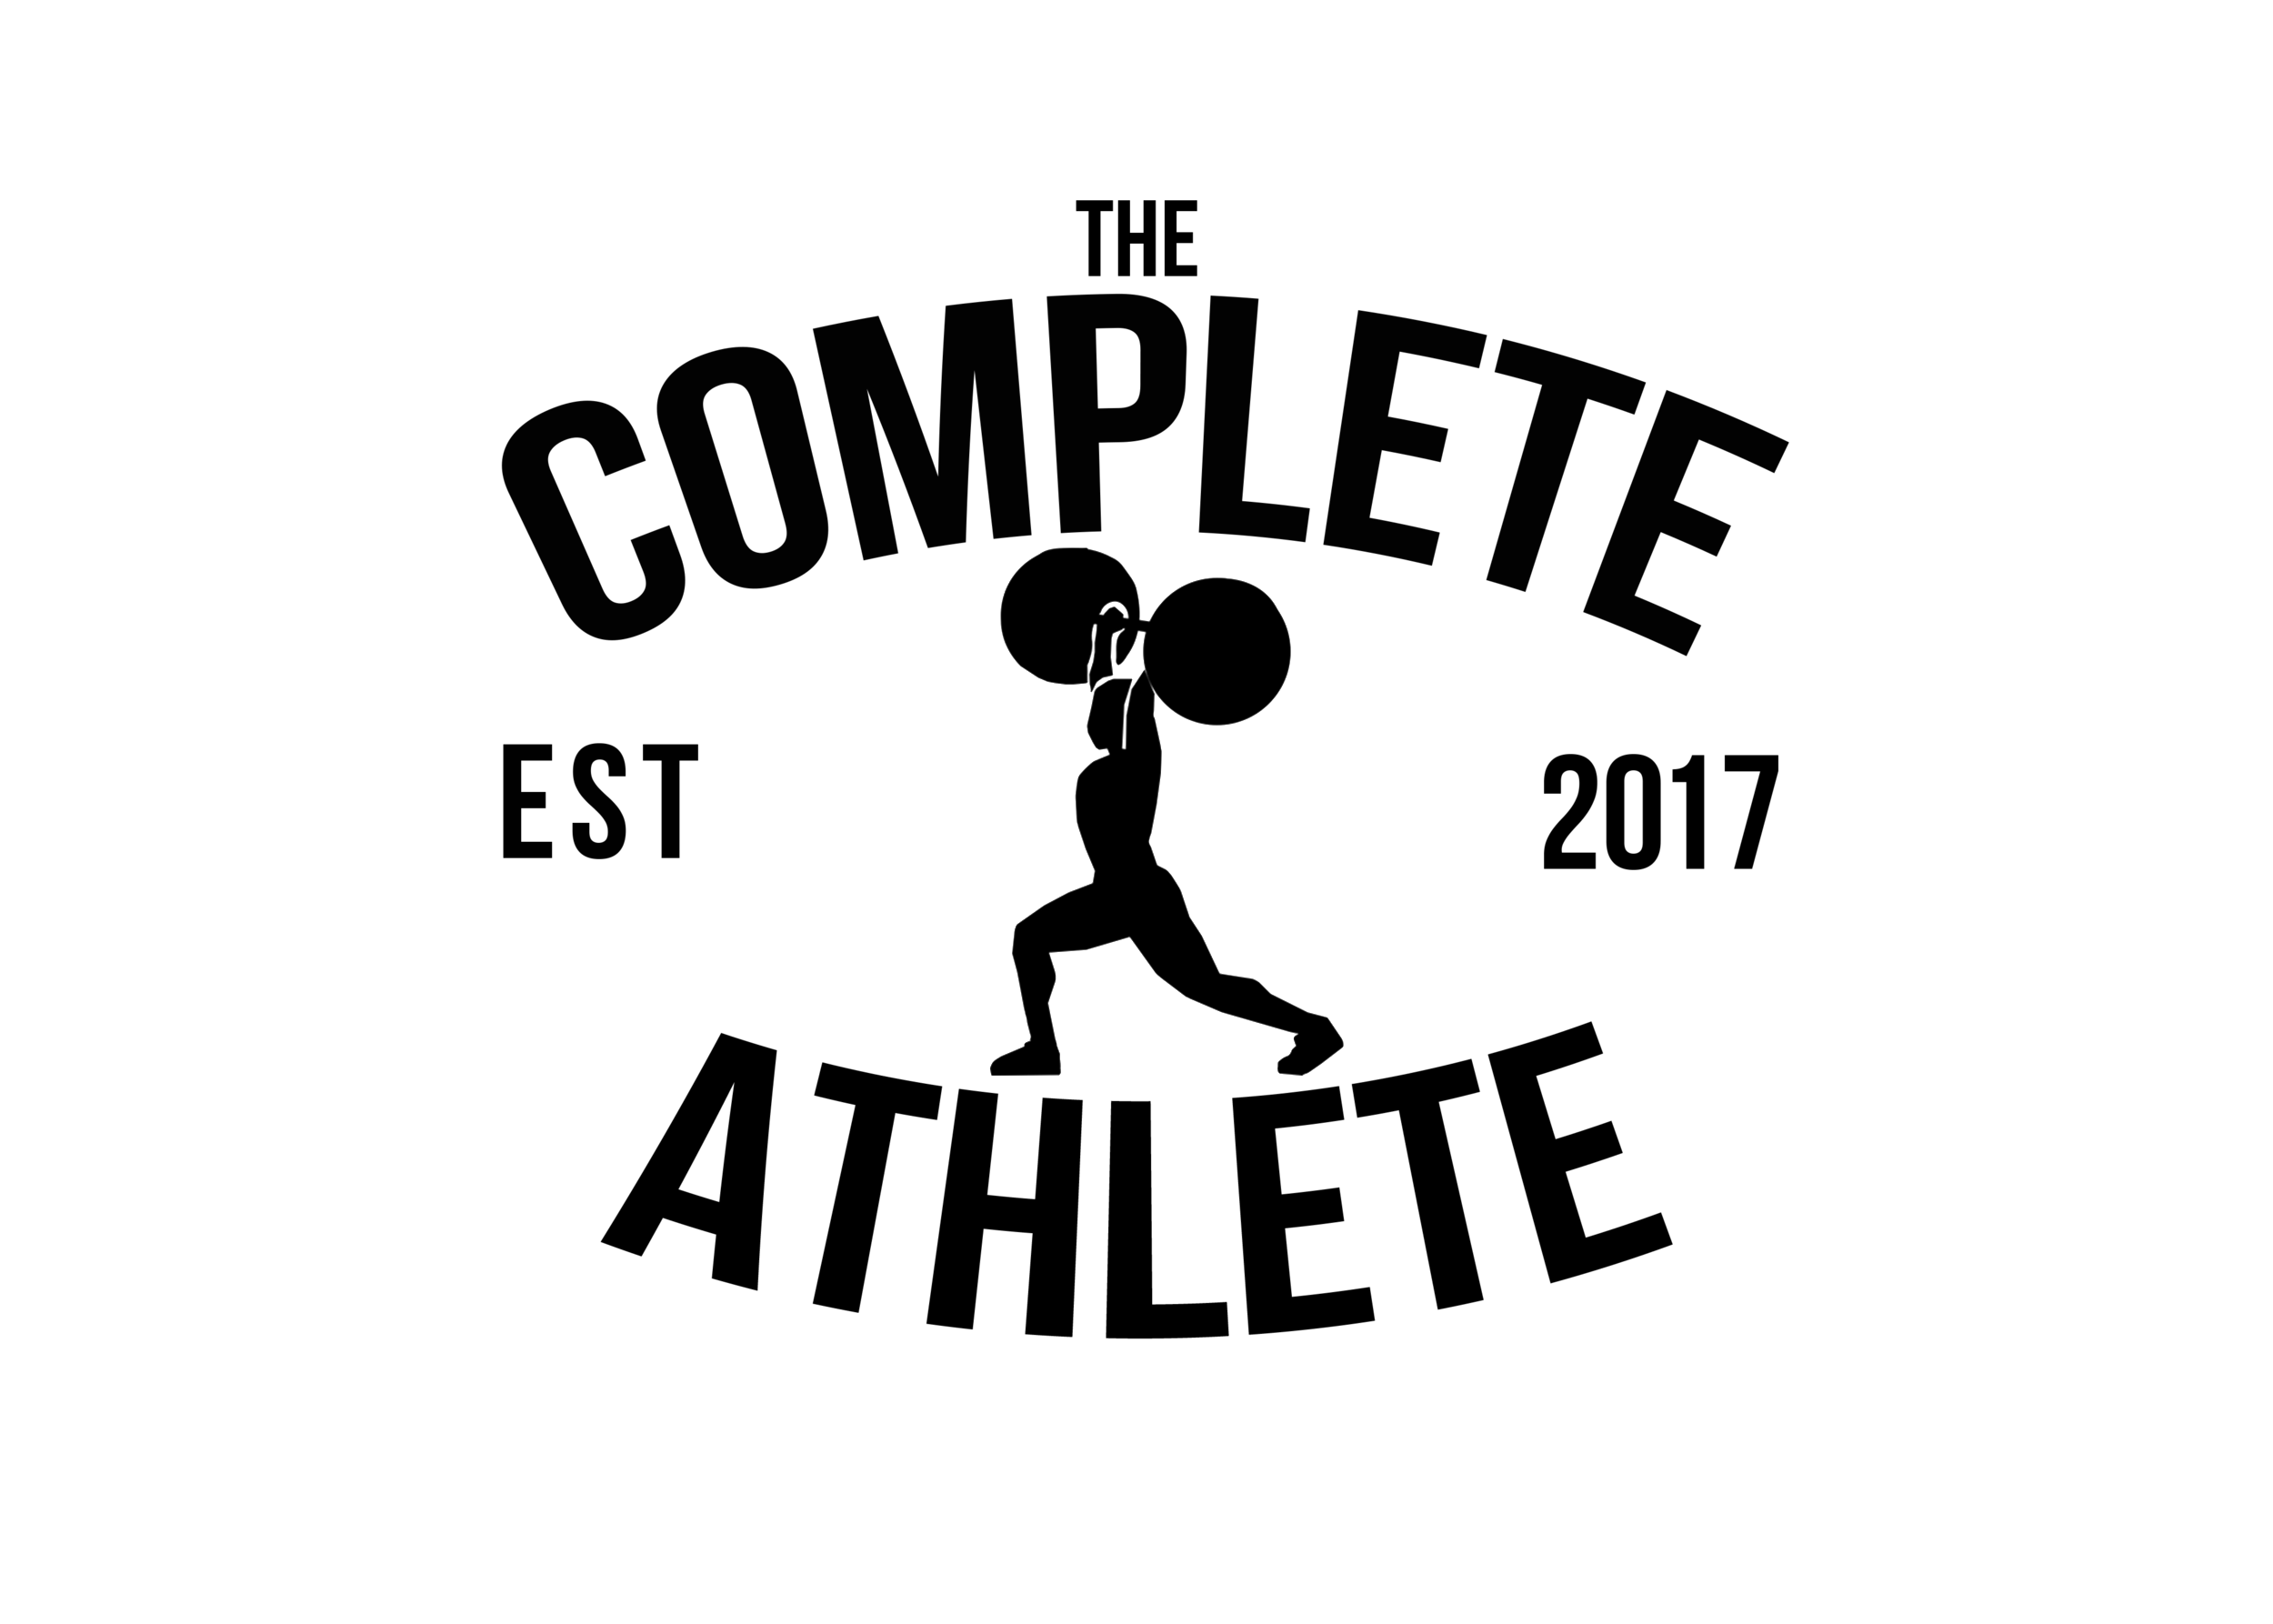 The Complete Athlete - Providing World-Class Continuing Education For Fitness Trainers, Coaches, and GymsThe Complete Athlete focuses on continuing education with research and evidence-based information for all trainers, coaches, and gyms. Offering specialty services from a team of certified coaches online and onsite.